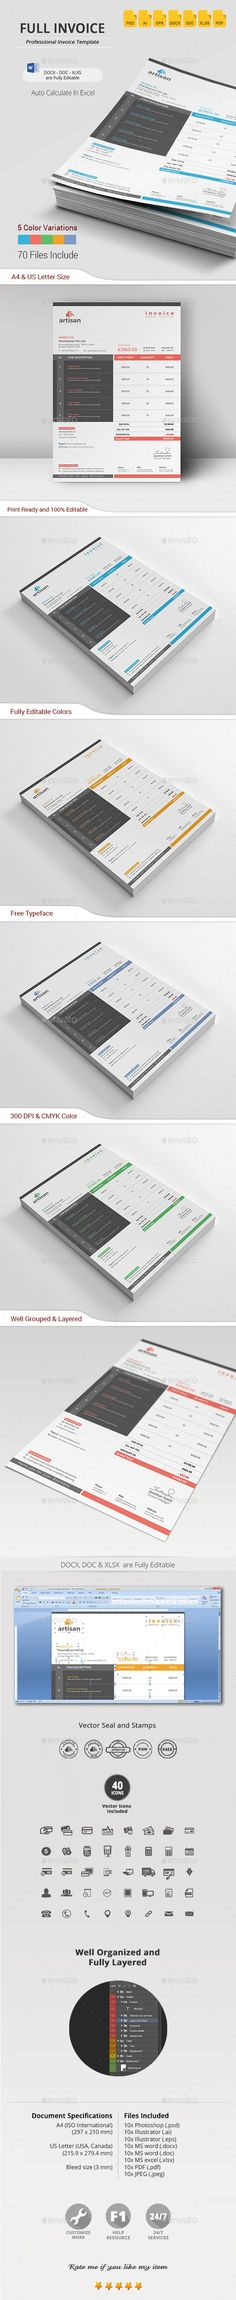 Commercial Proposal Format Captivating The Business Proposal Template  Business Proposal Template .